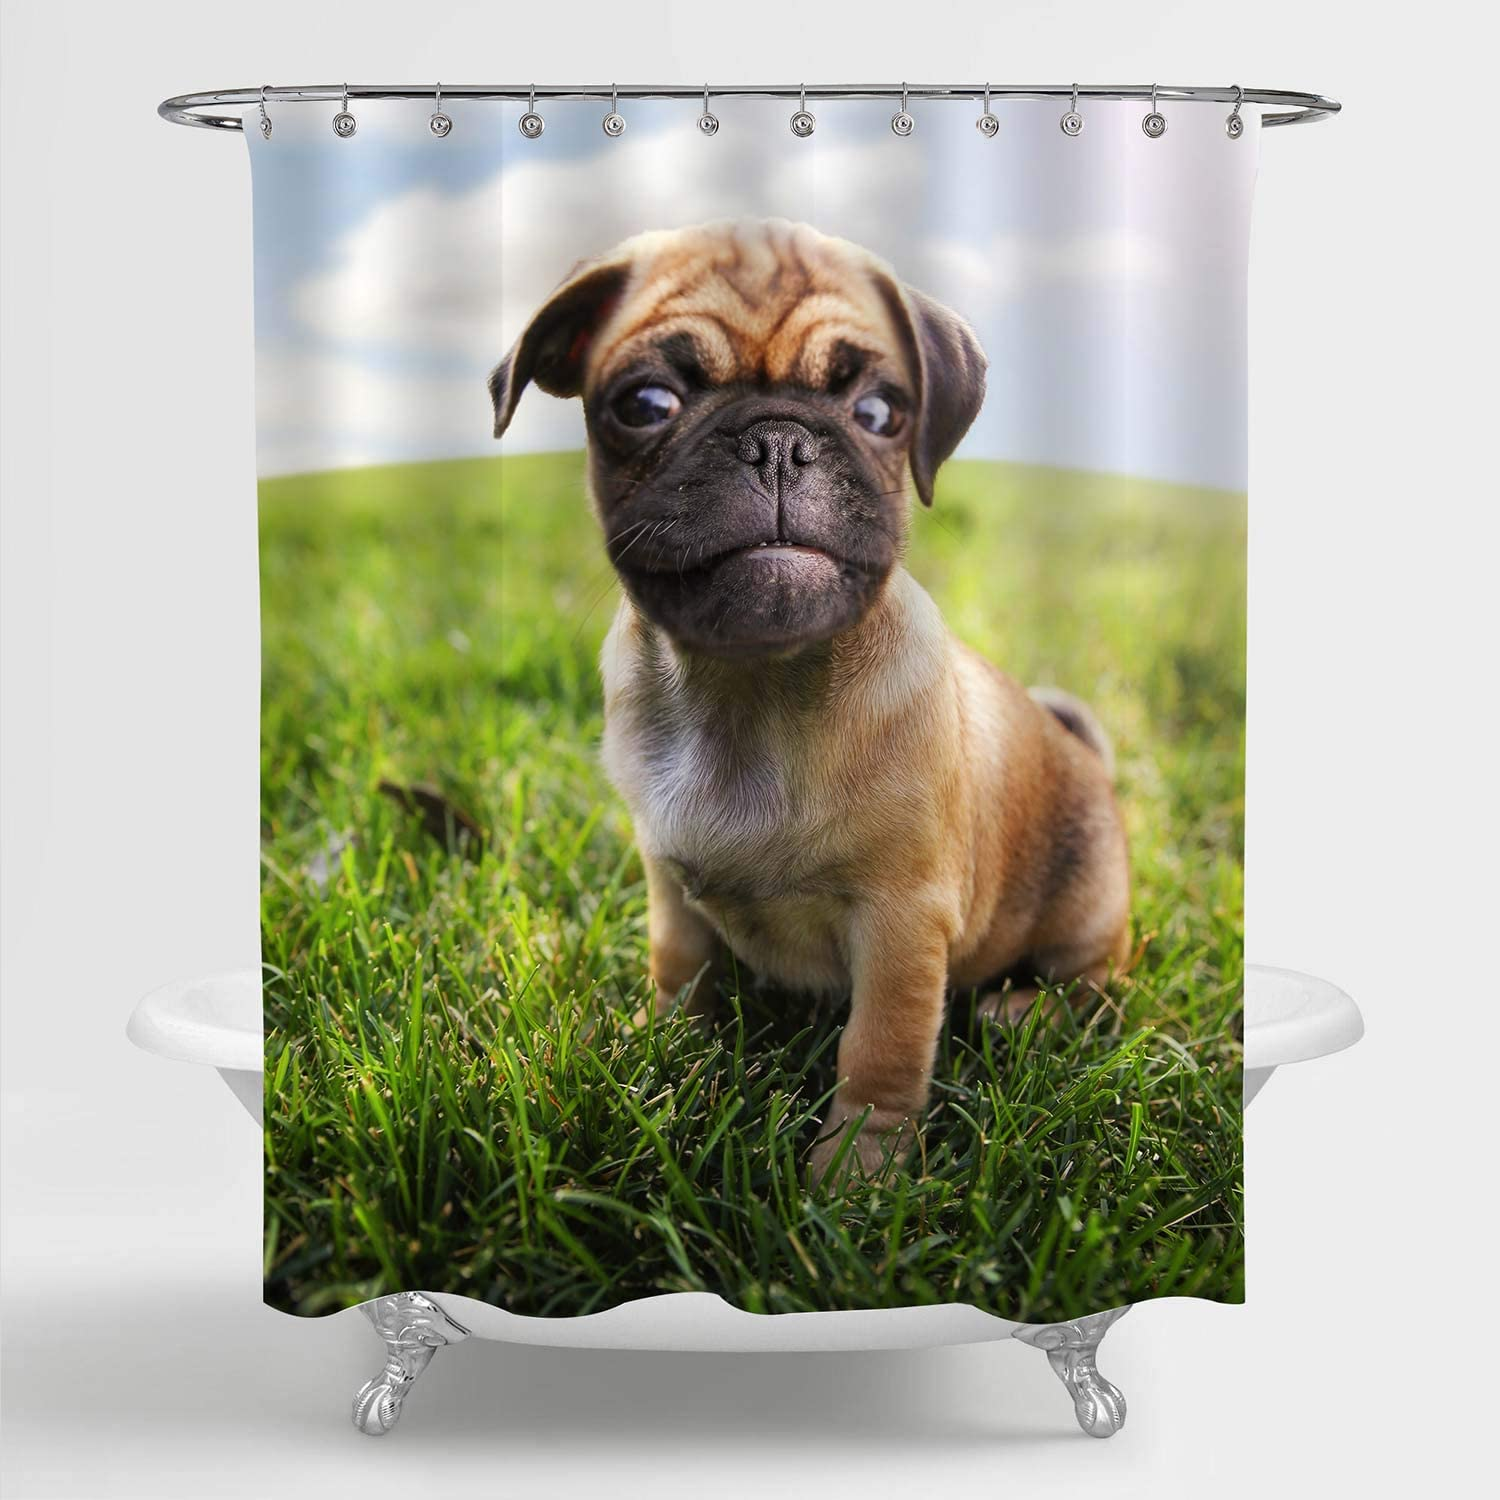 MitoVilla Dog Shower Curtain Set with Hooks for Kids Bathroom Decor, Cute Baby Pug Chihuahua Mix Chug at a Garden Grassland Art Print Bathroom Accessories, Brown, Green, 72